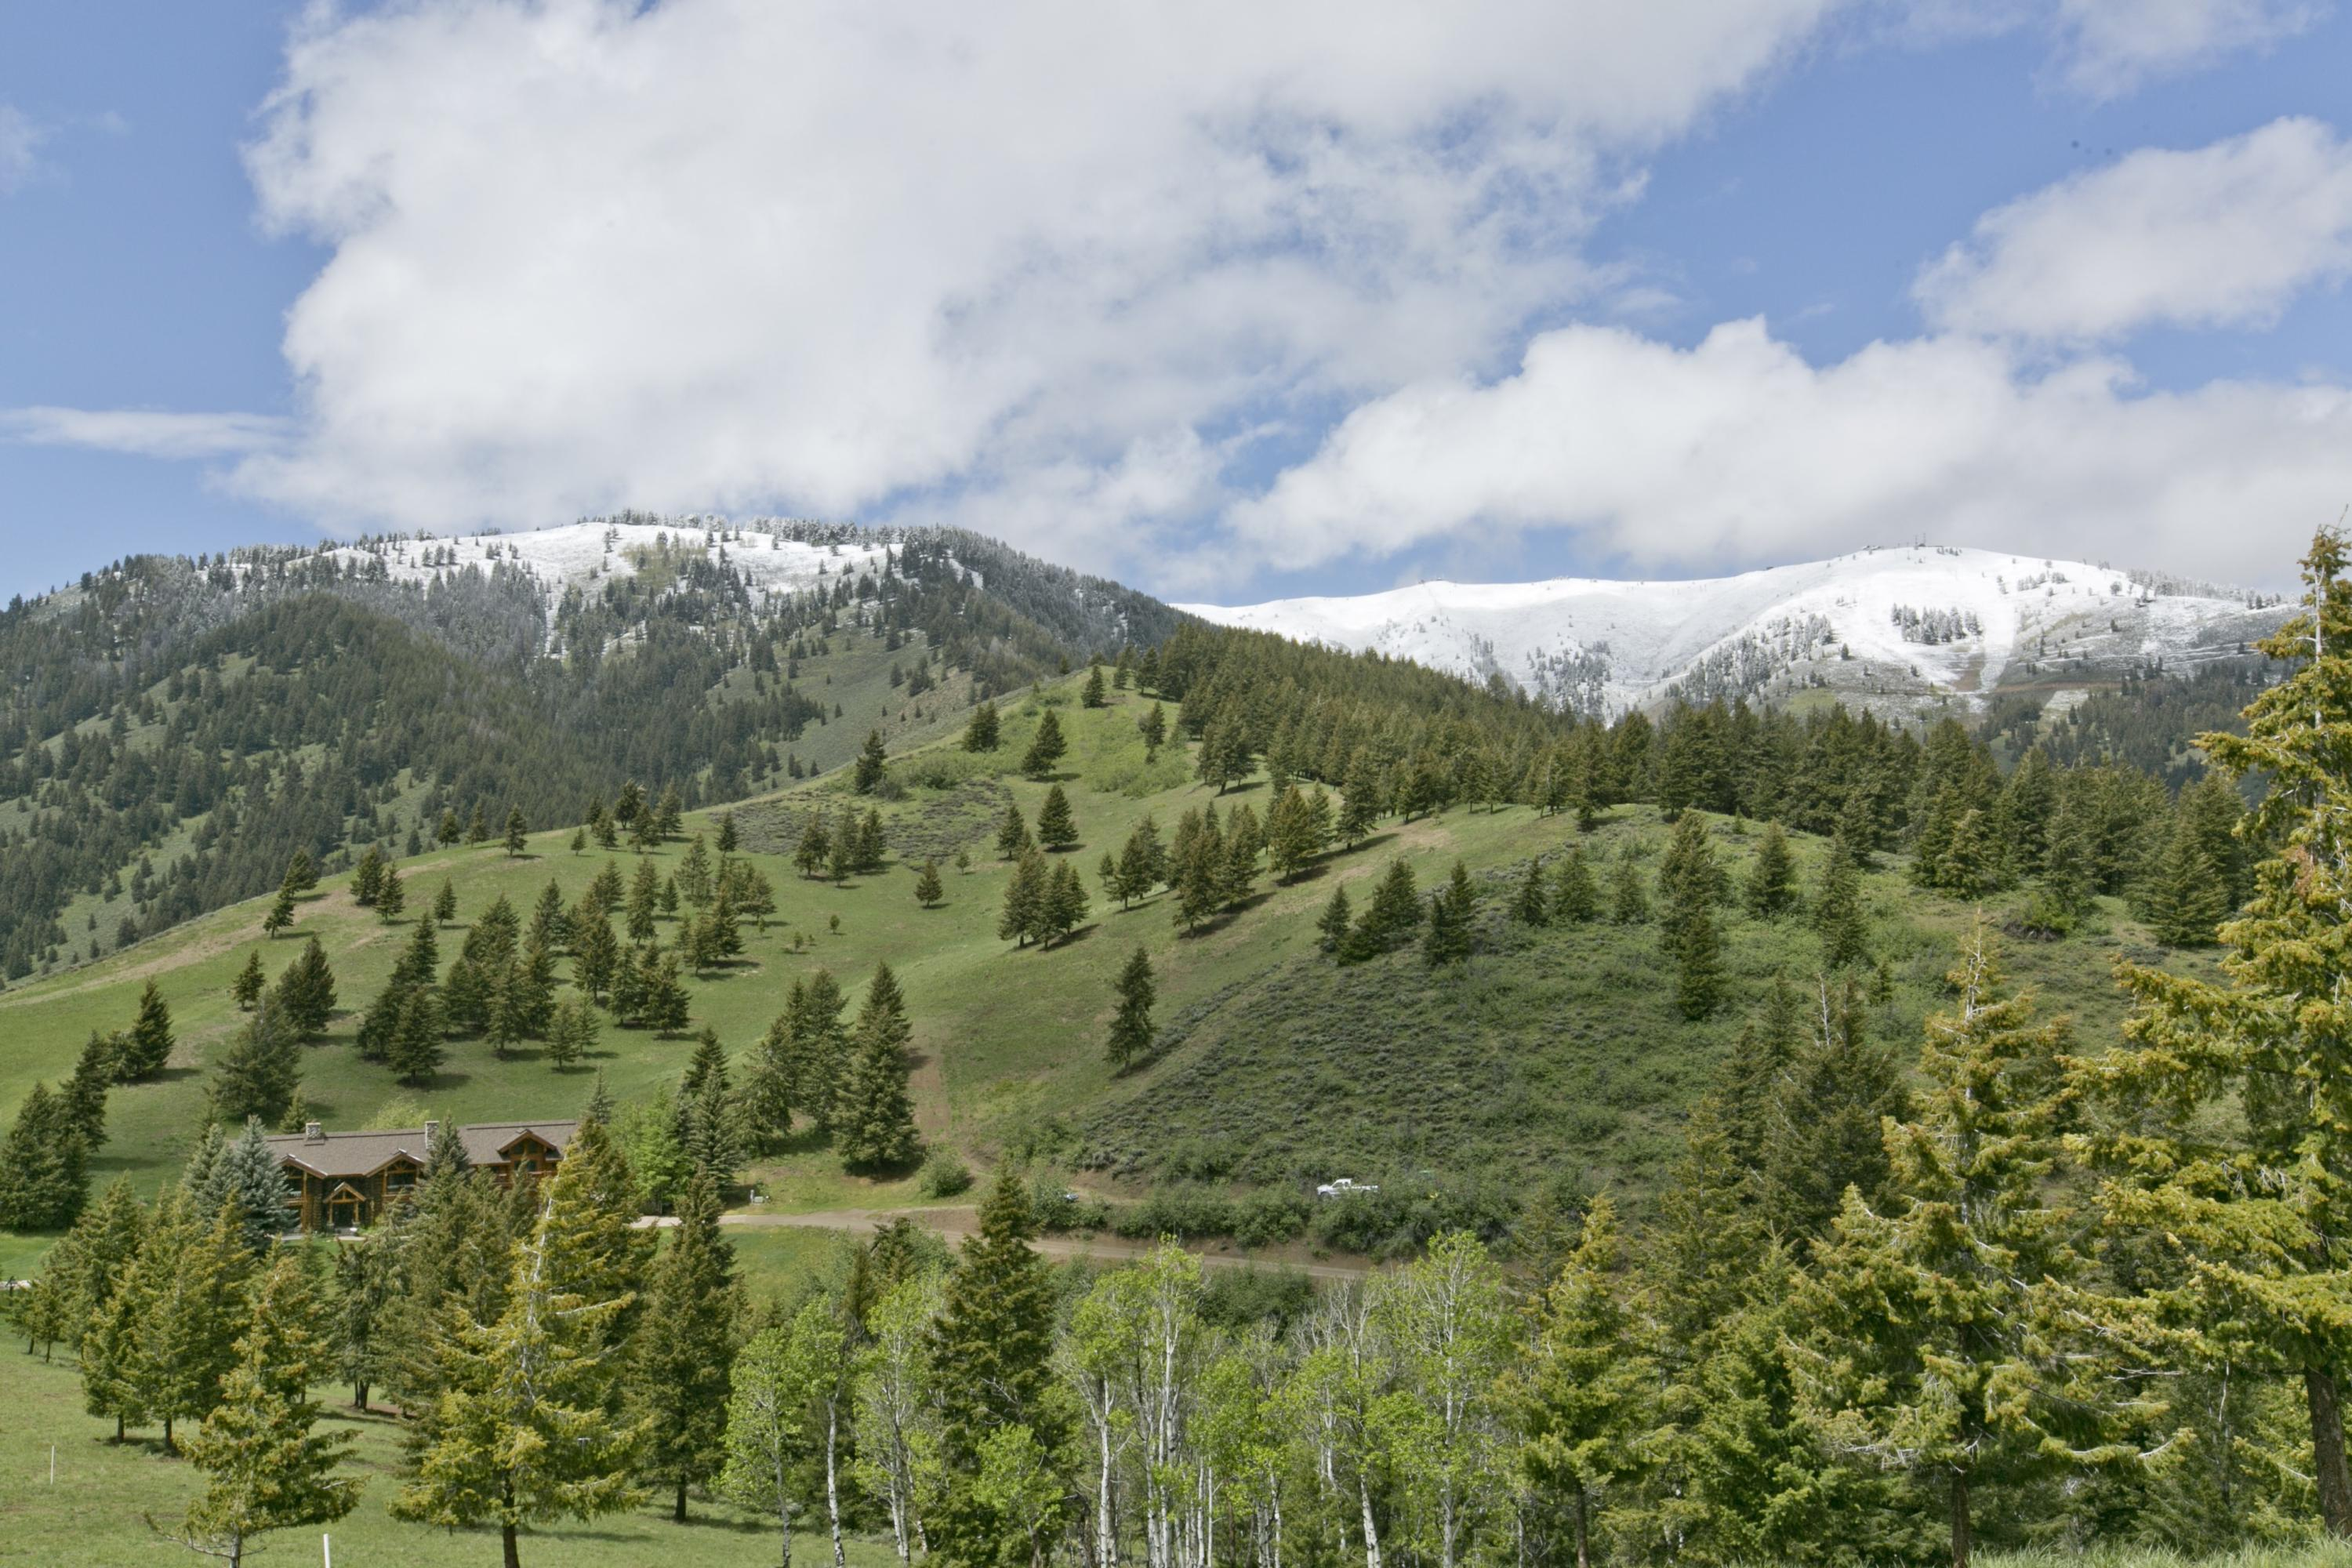 70 COLD SPRINGS GULCH RD, KETCHUM, ID 83340